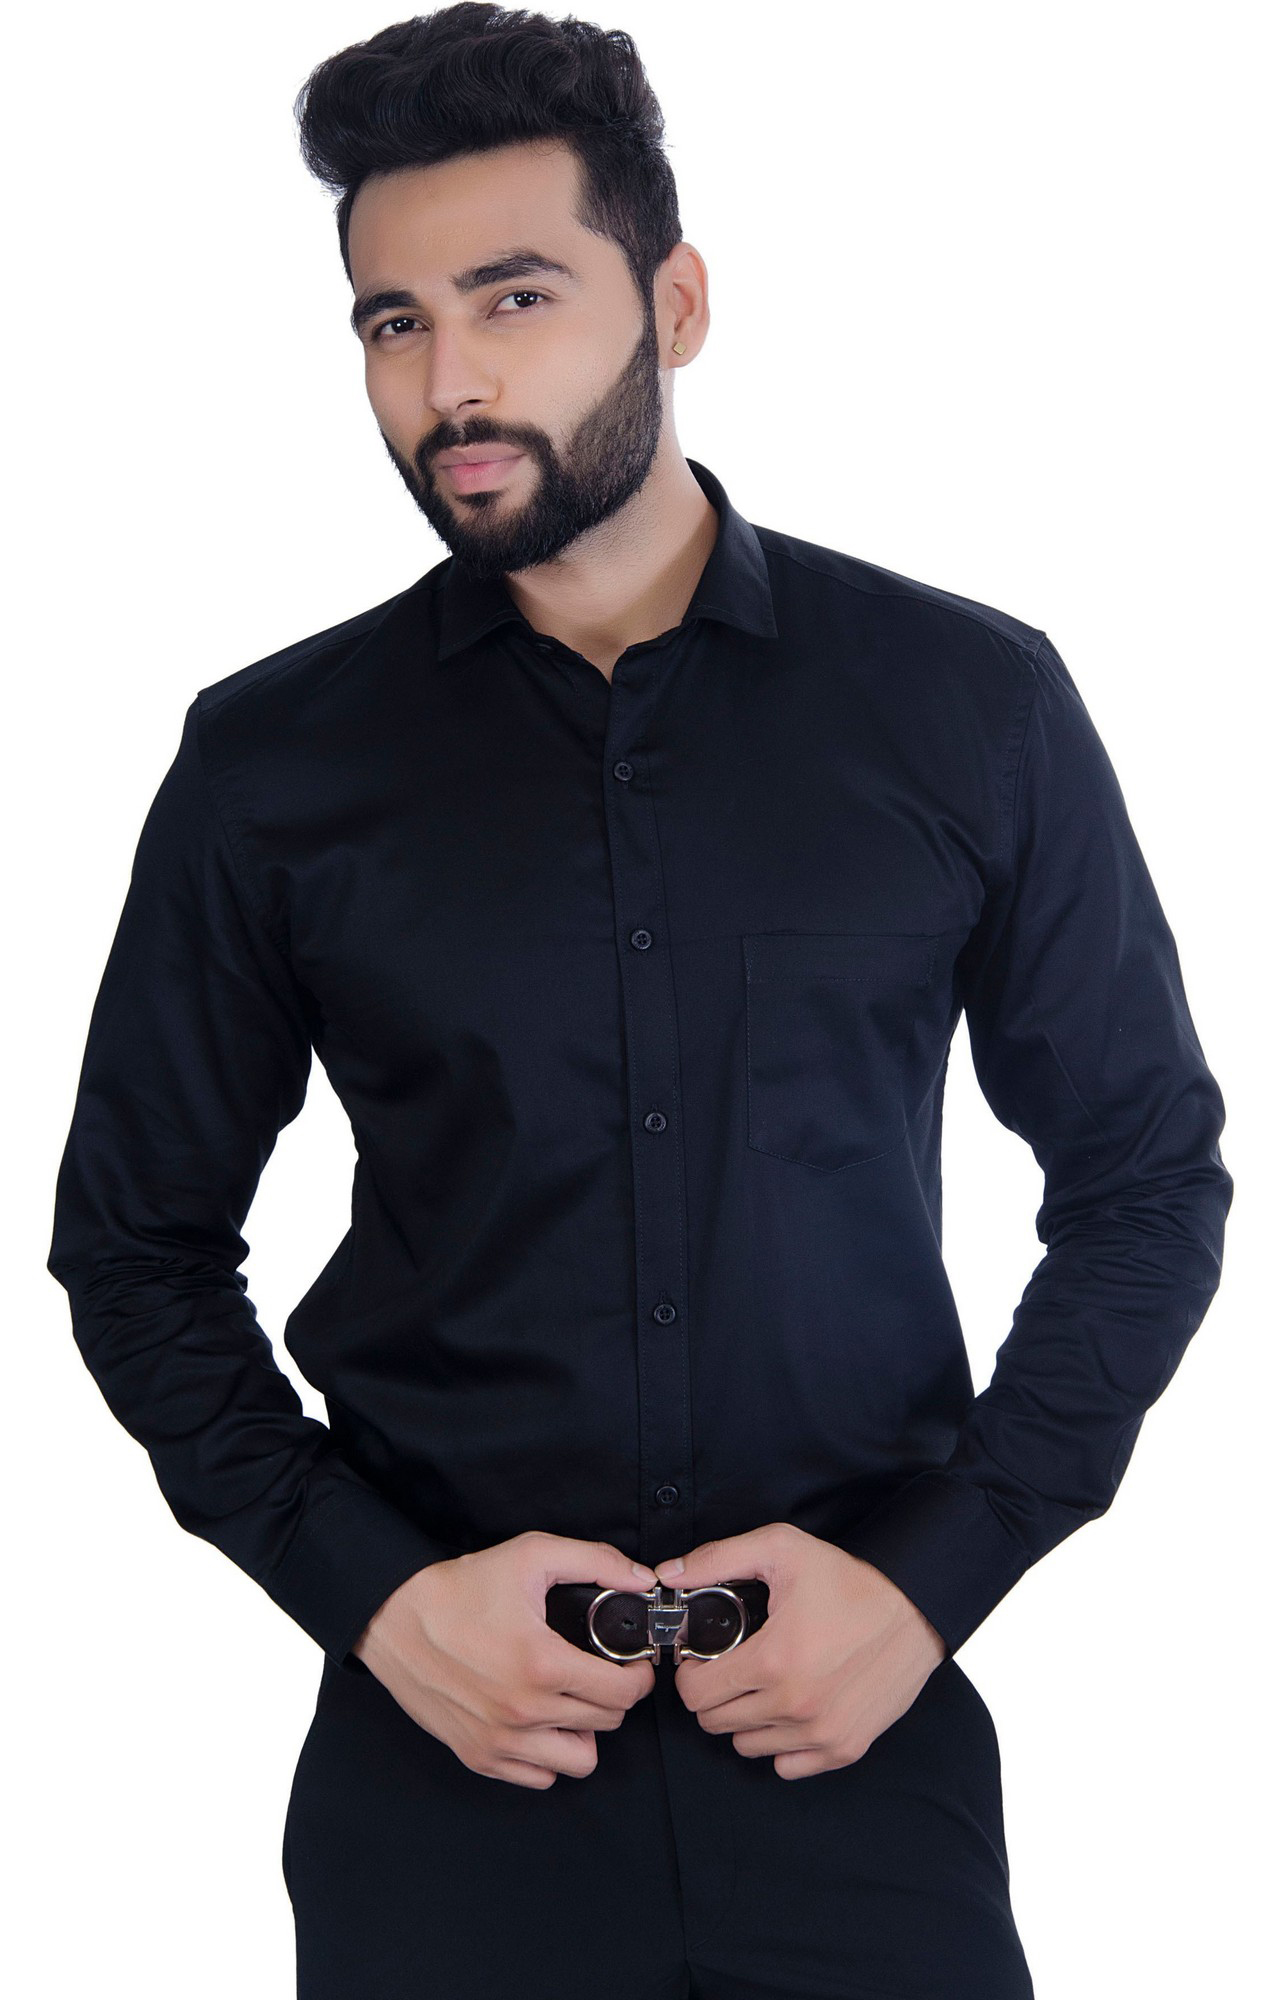 FIFTH ANFOLD Solid Pure Cotton Formal Full Long Sleev Black Spread Collar Mens Shirt